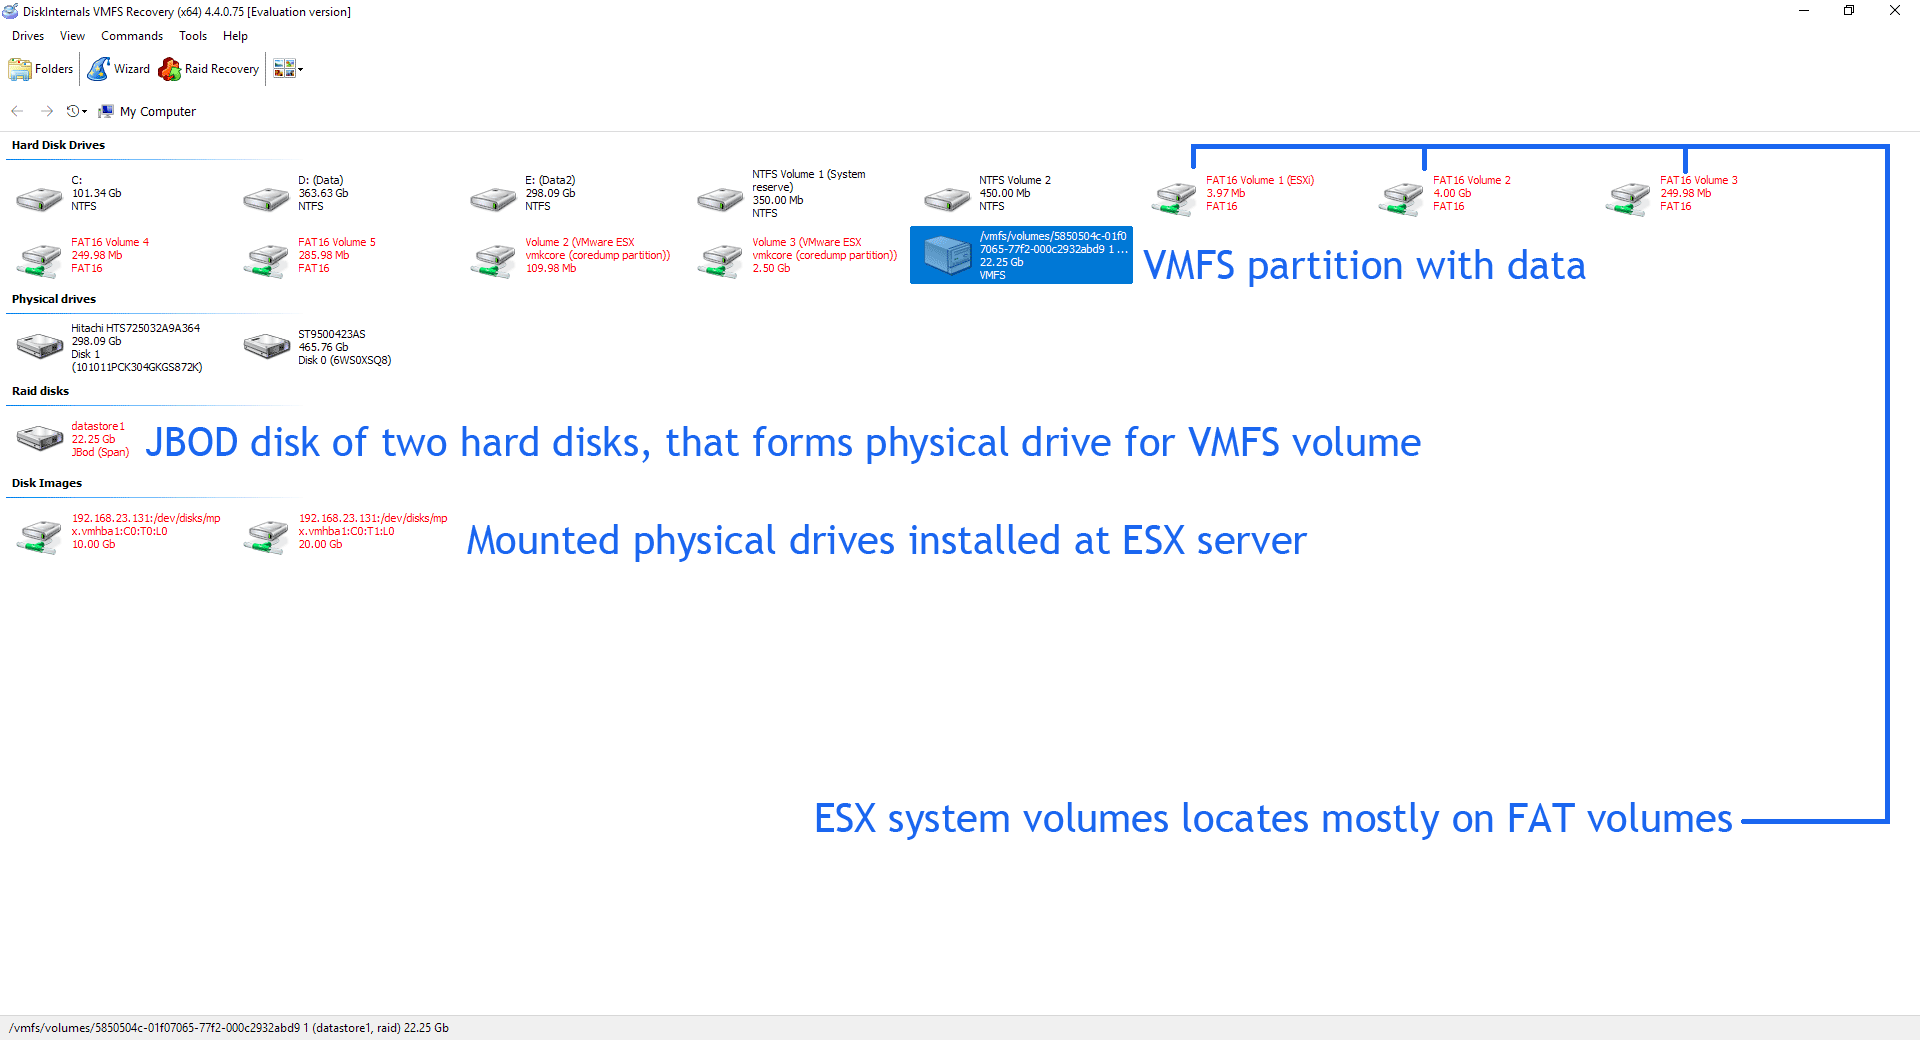 How to connect to ESX Server using SSH (SFTP)